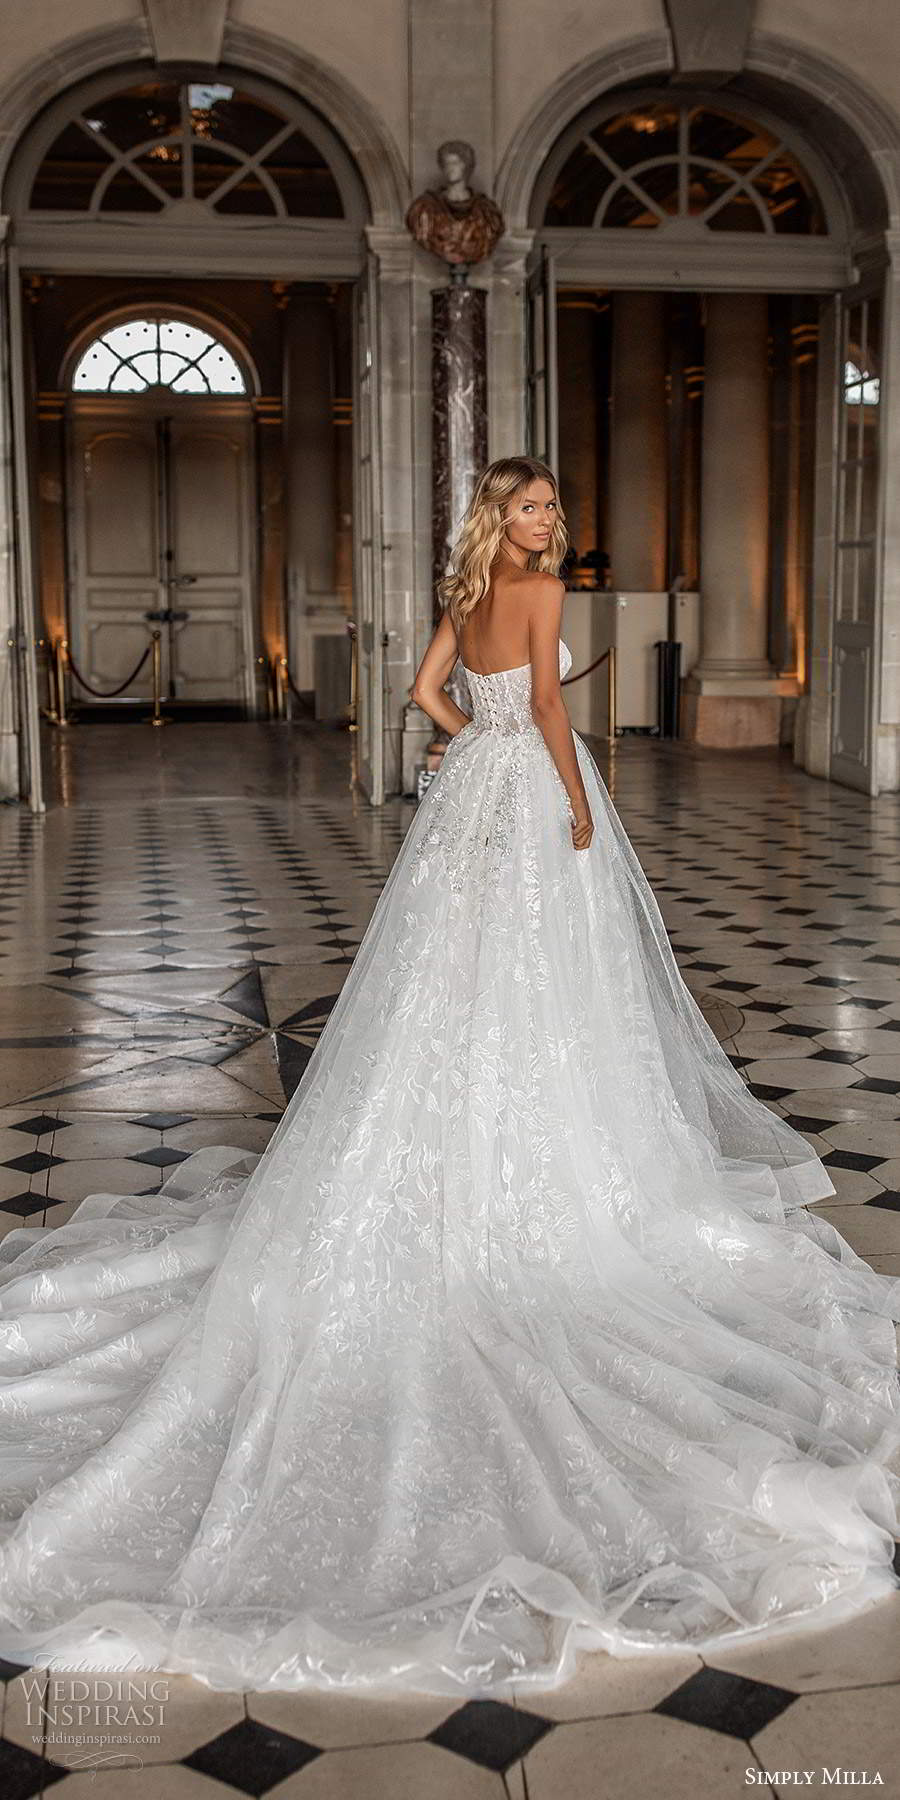 simply milla nova 2020 bridal strapless sweetheart neckline fully embellished aline ball gown wedding dress cathedral train (1) bv